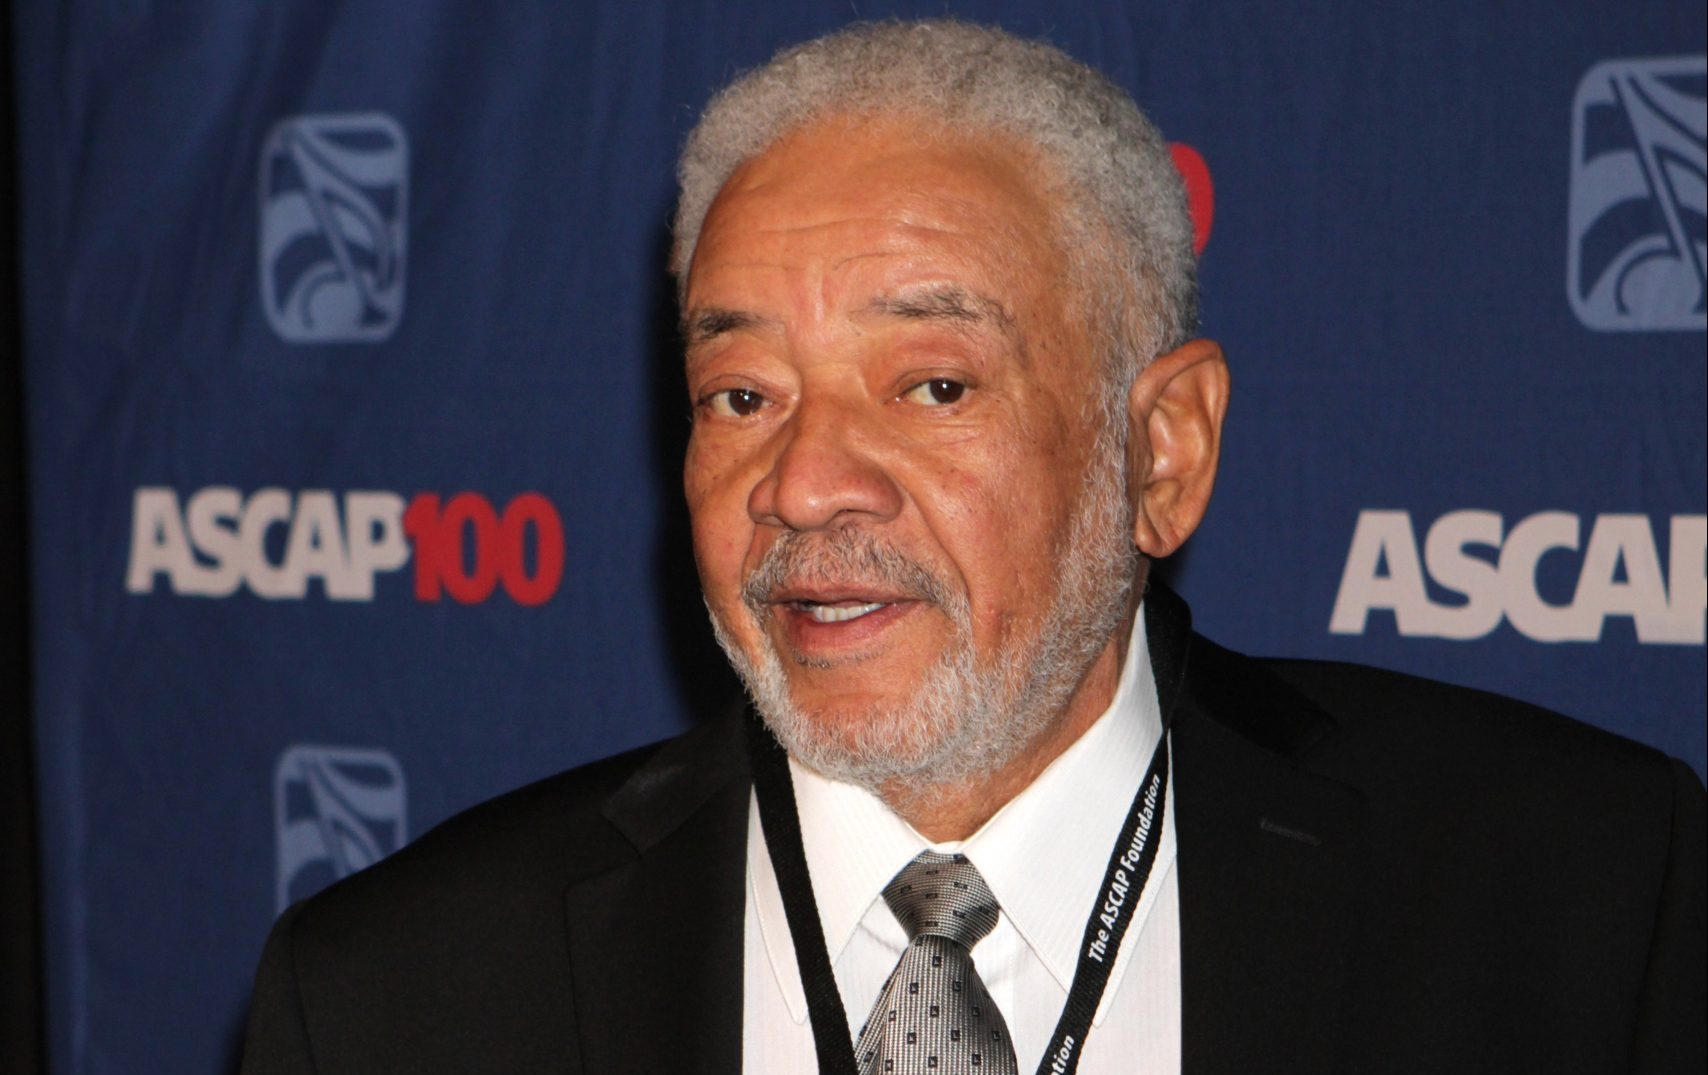 Lean On Me singer Bill Withers dies aged 81